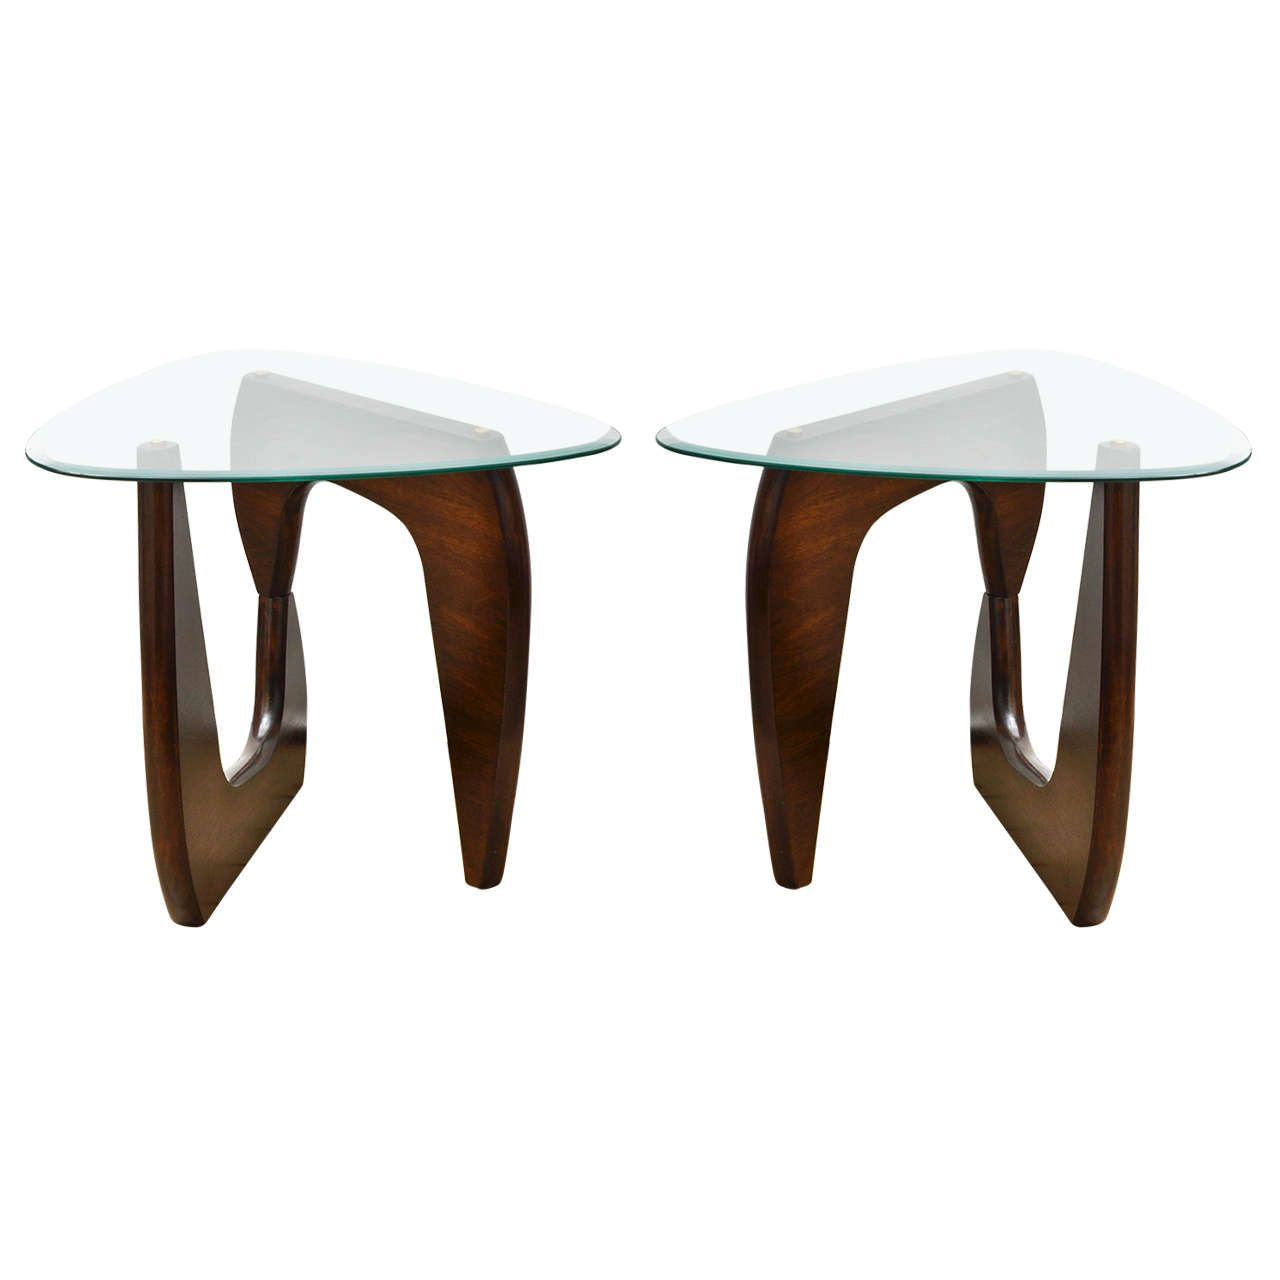 Wonderful View This Item And Discover Similar Side Tables For Sale At   Pair Of Wood  Base Glass Triangular Top Tables In The Style Of Noguchi. Nice Ideas